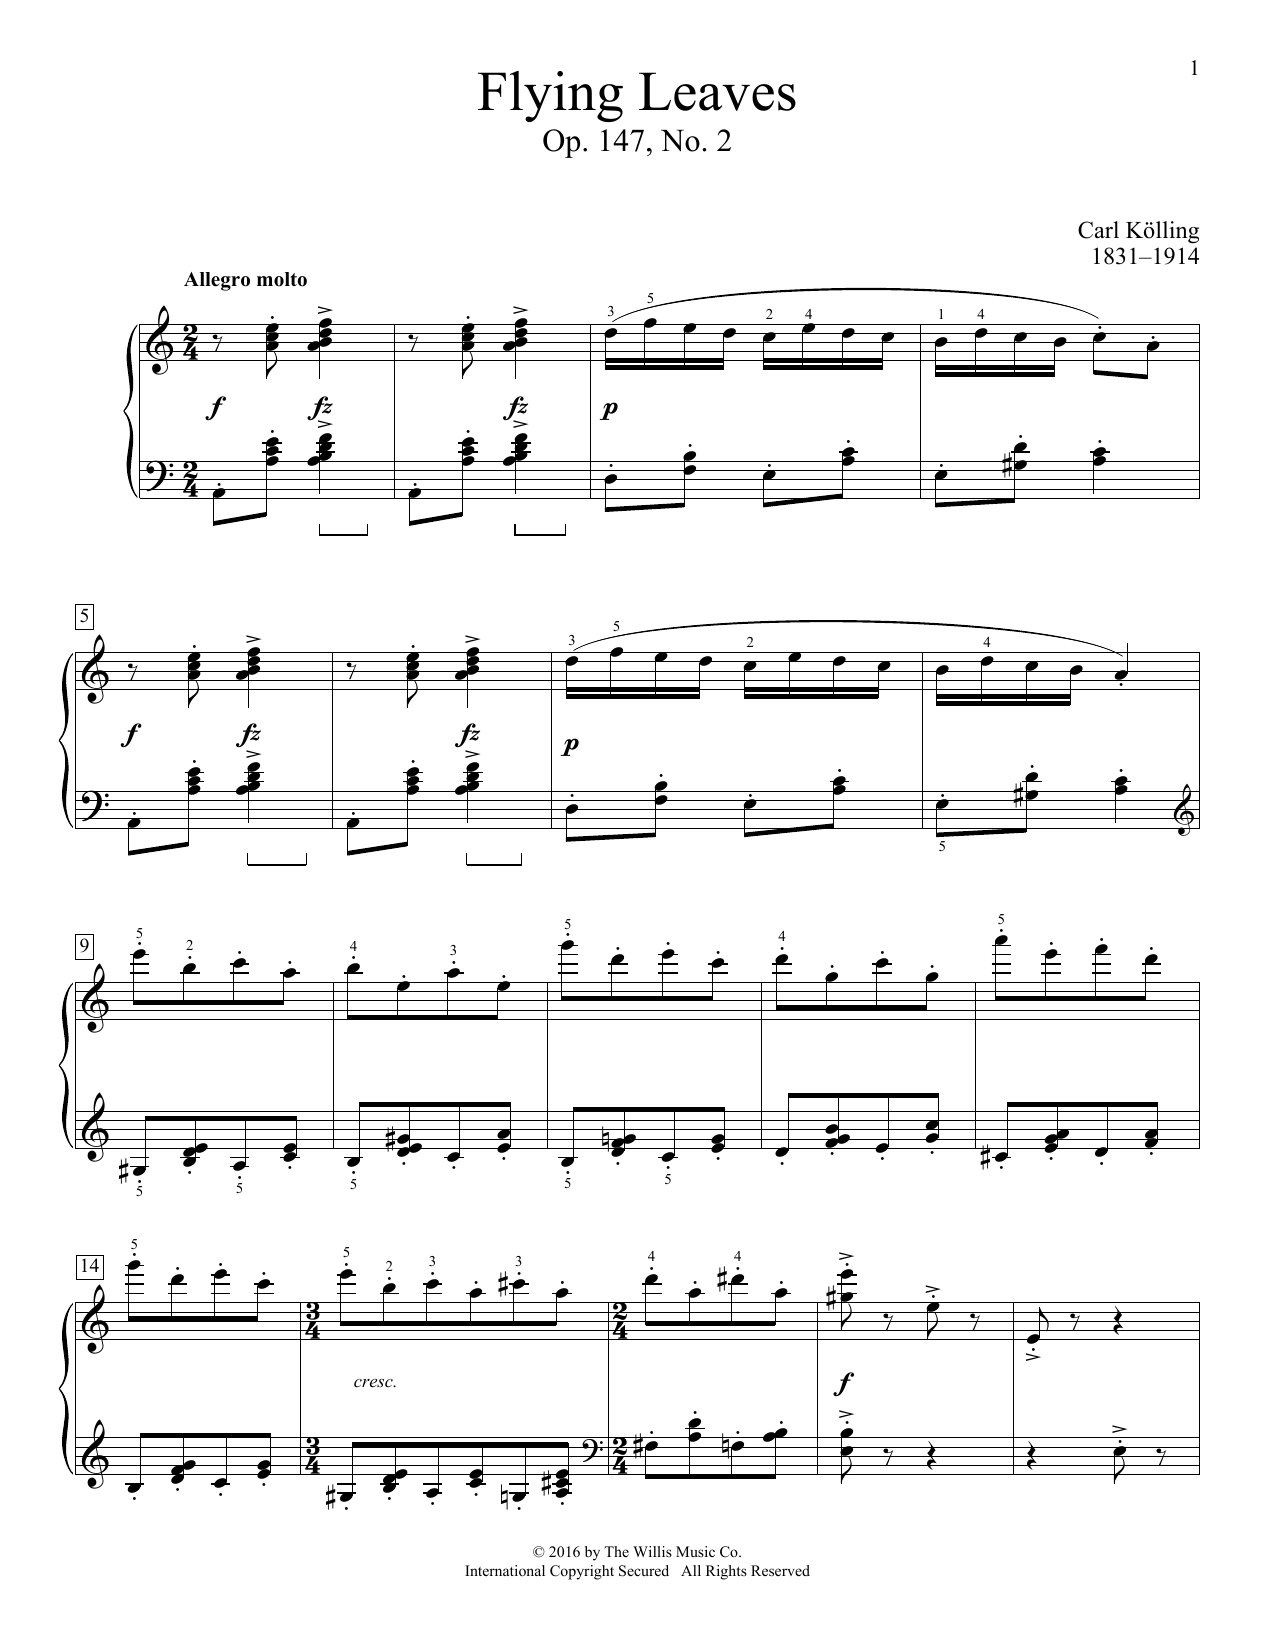 Flying Leaves, Op. 147, No. 2 Sheet Music